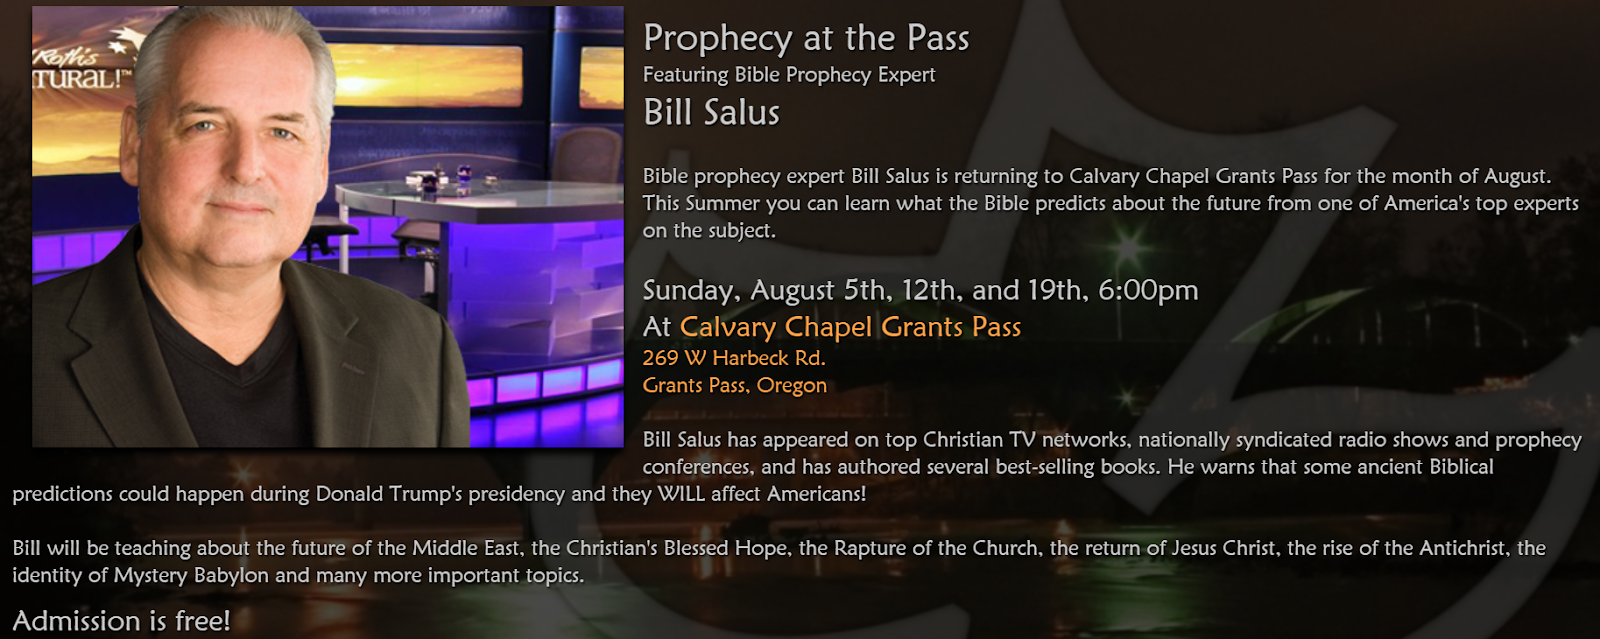 Upcoming Bill Salus Events in August